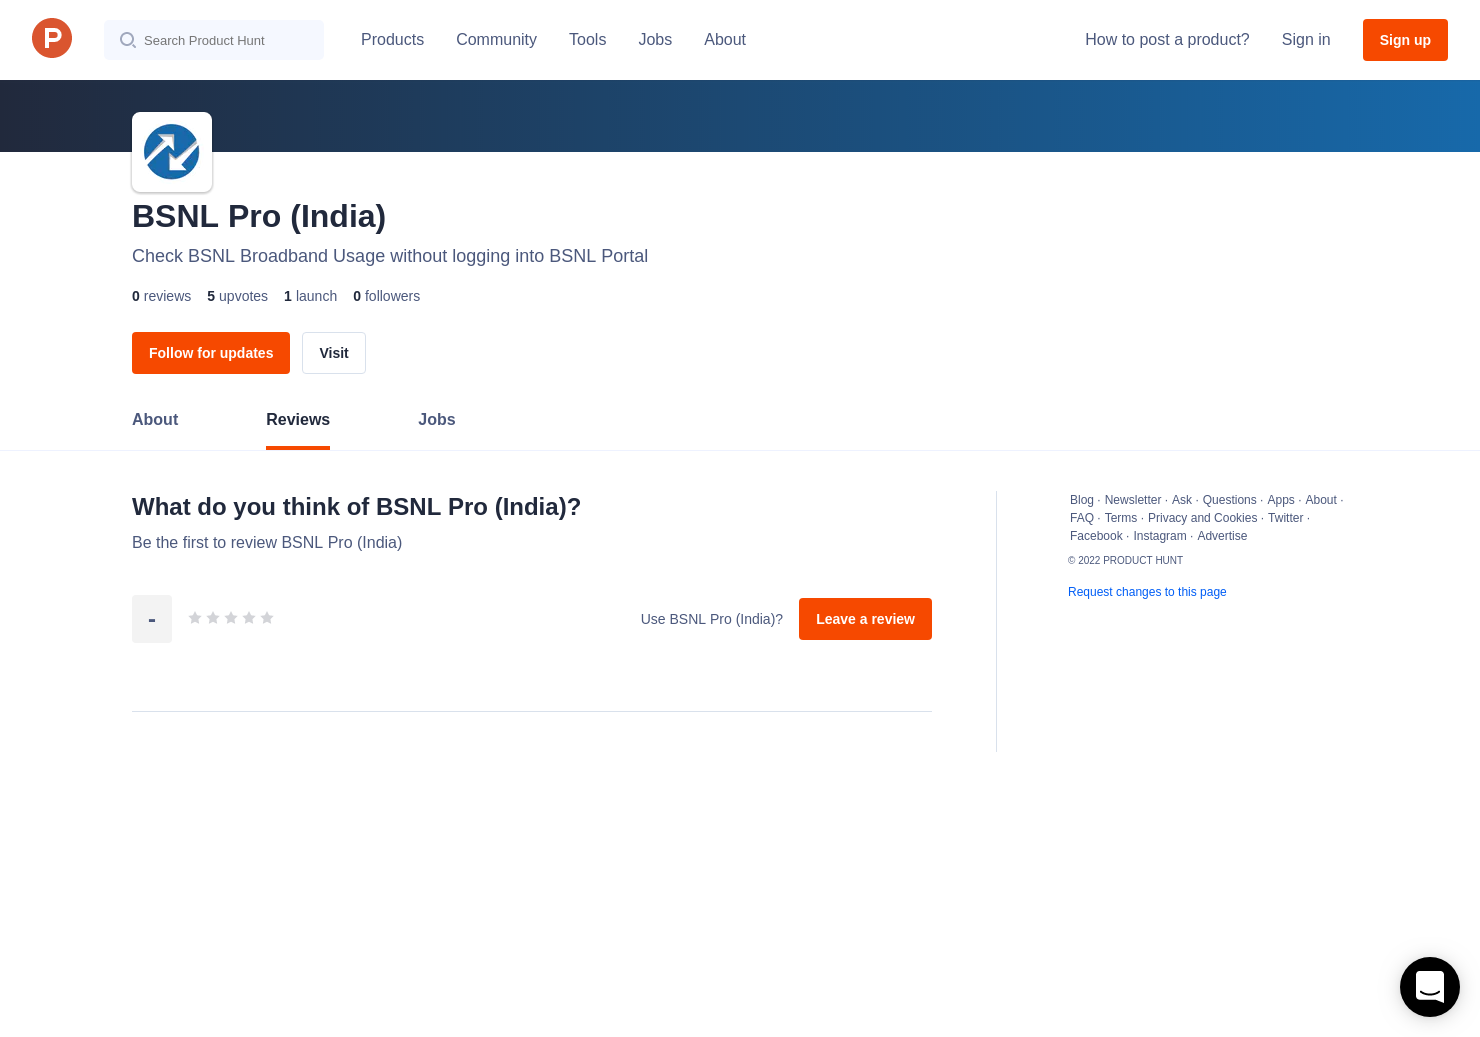 BSNL Pro (India) Reviews - Pros, Cons and Rating | Product Hunt